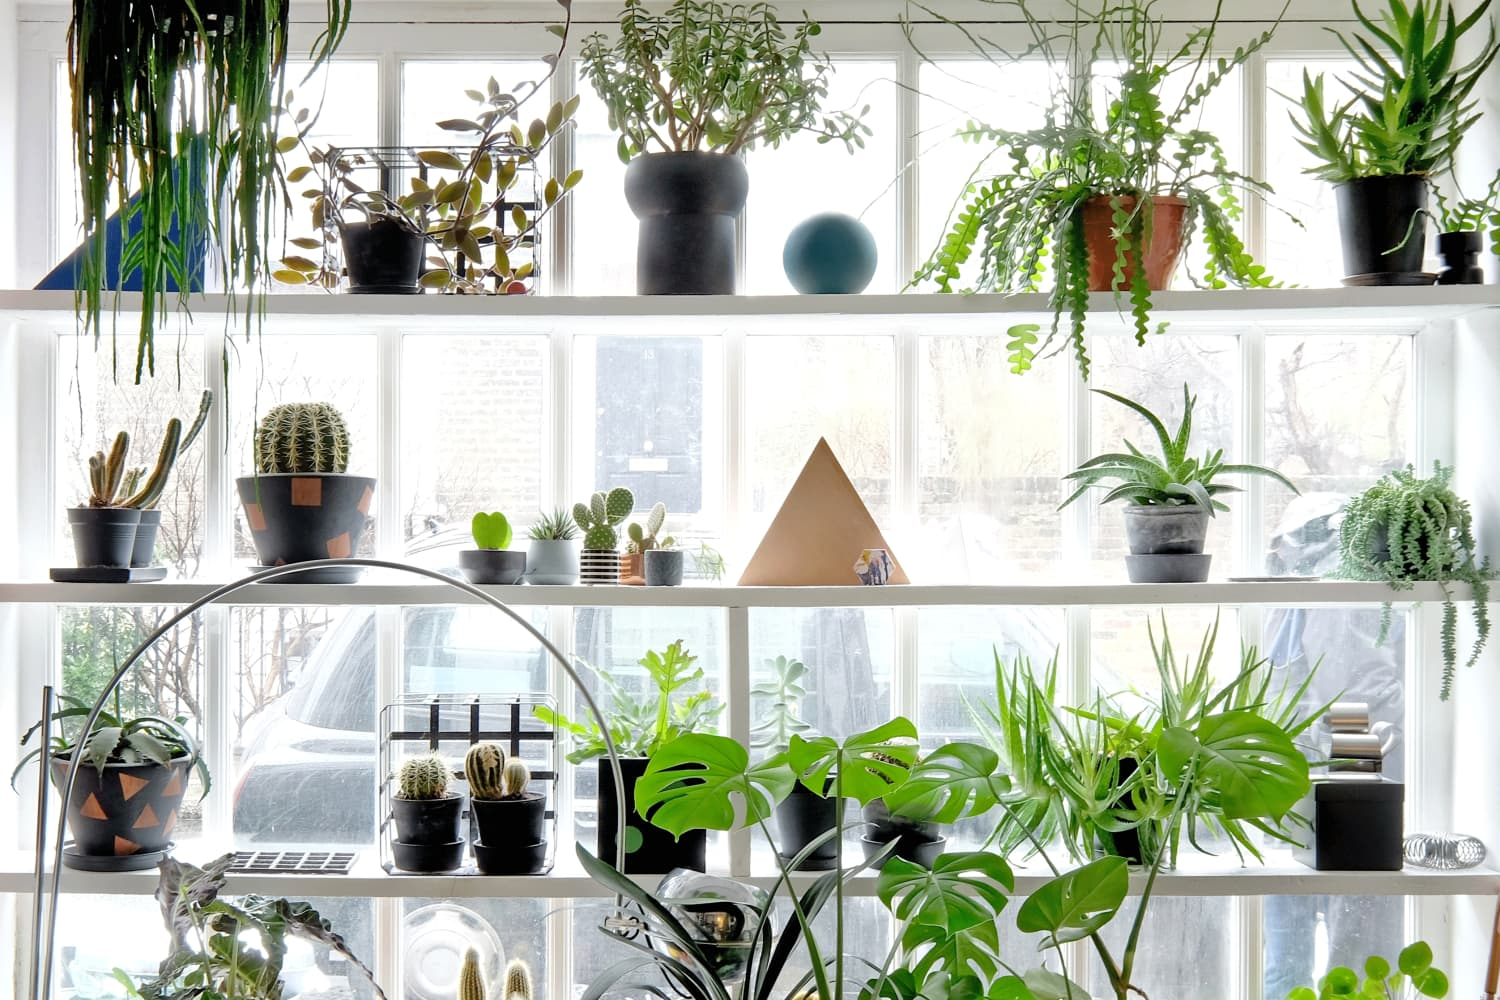 6 Houseplants That Are a Little Wacky, but You'll Want to Have Anyway